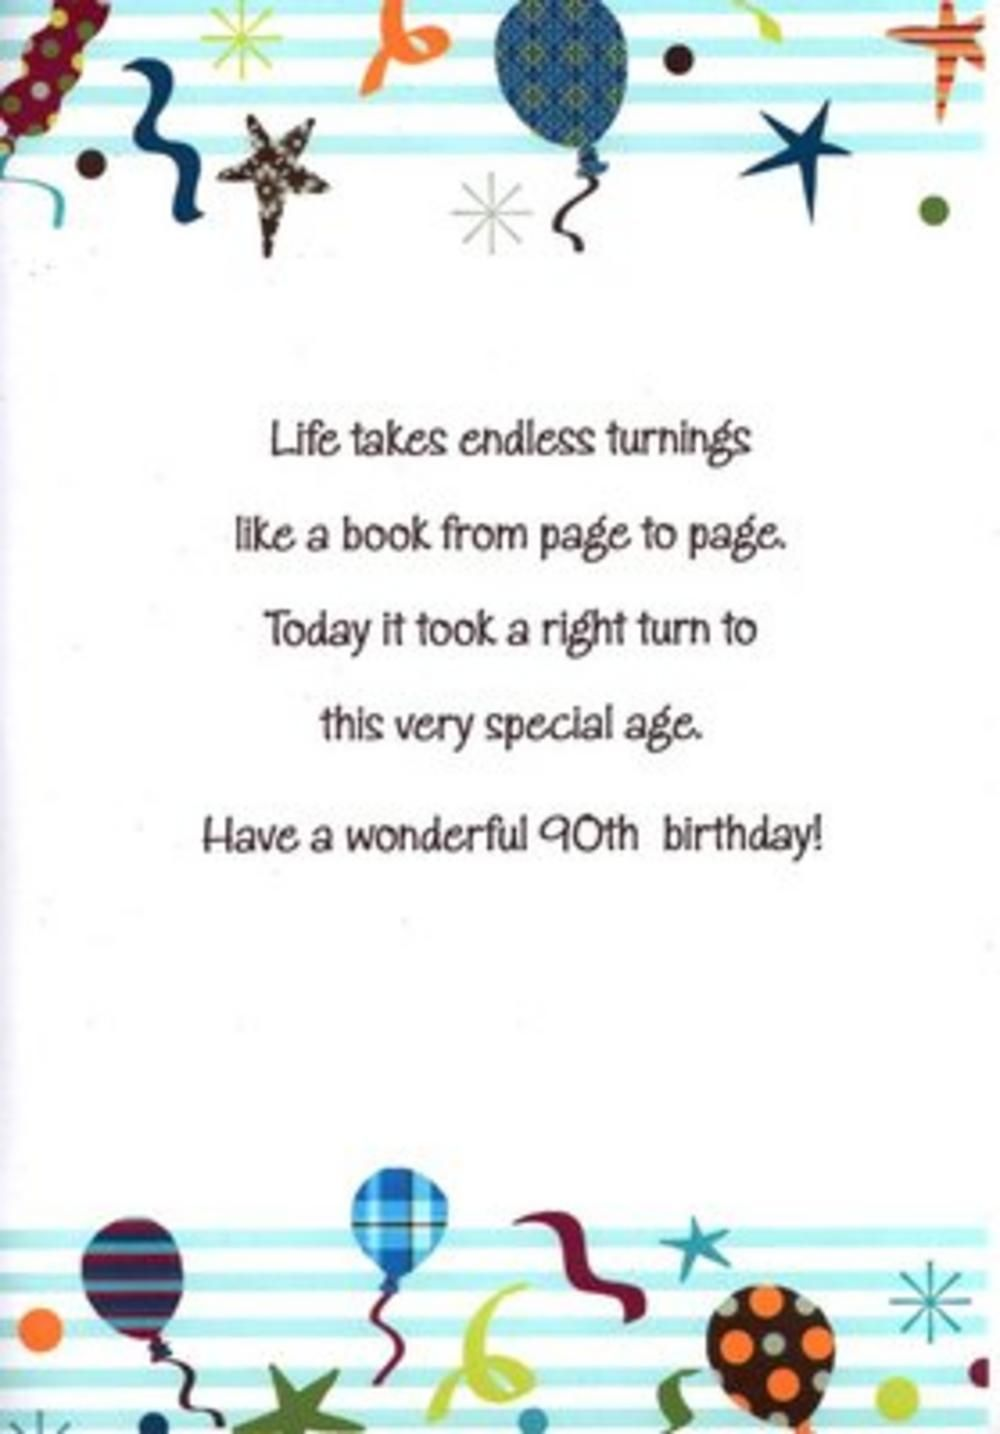 Verses for a 90th birthday card google search words verses for a 90th birthday card google search bookmarktalkfo Images